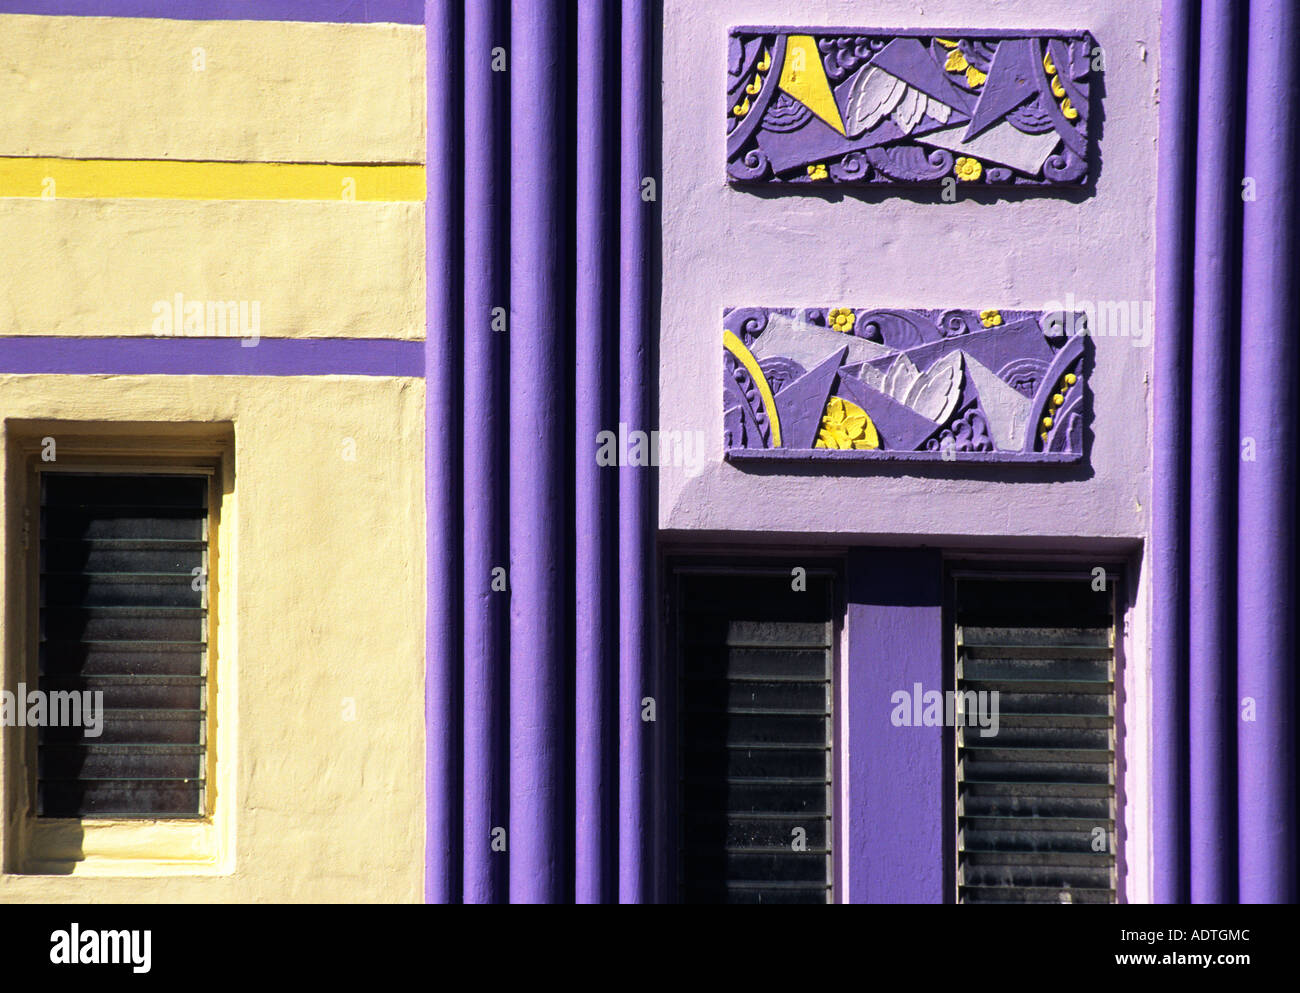 Miami Beach Art Deco Painted Building Facade Restored Detail  # Decoration Facade Tv Plasma